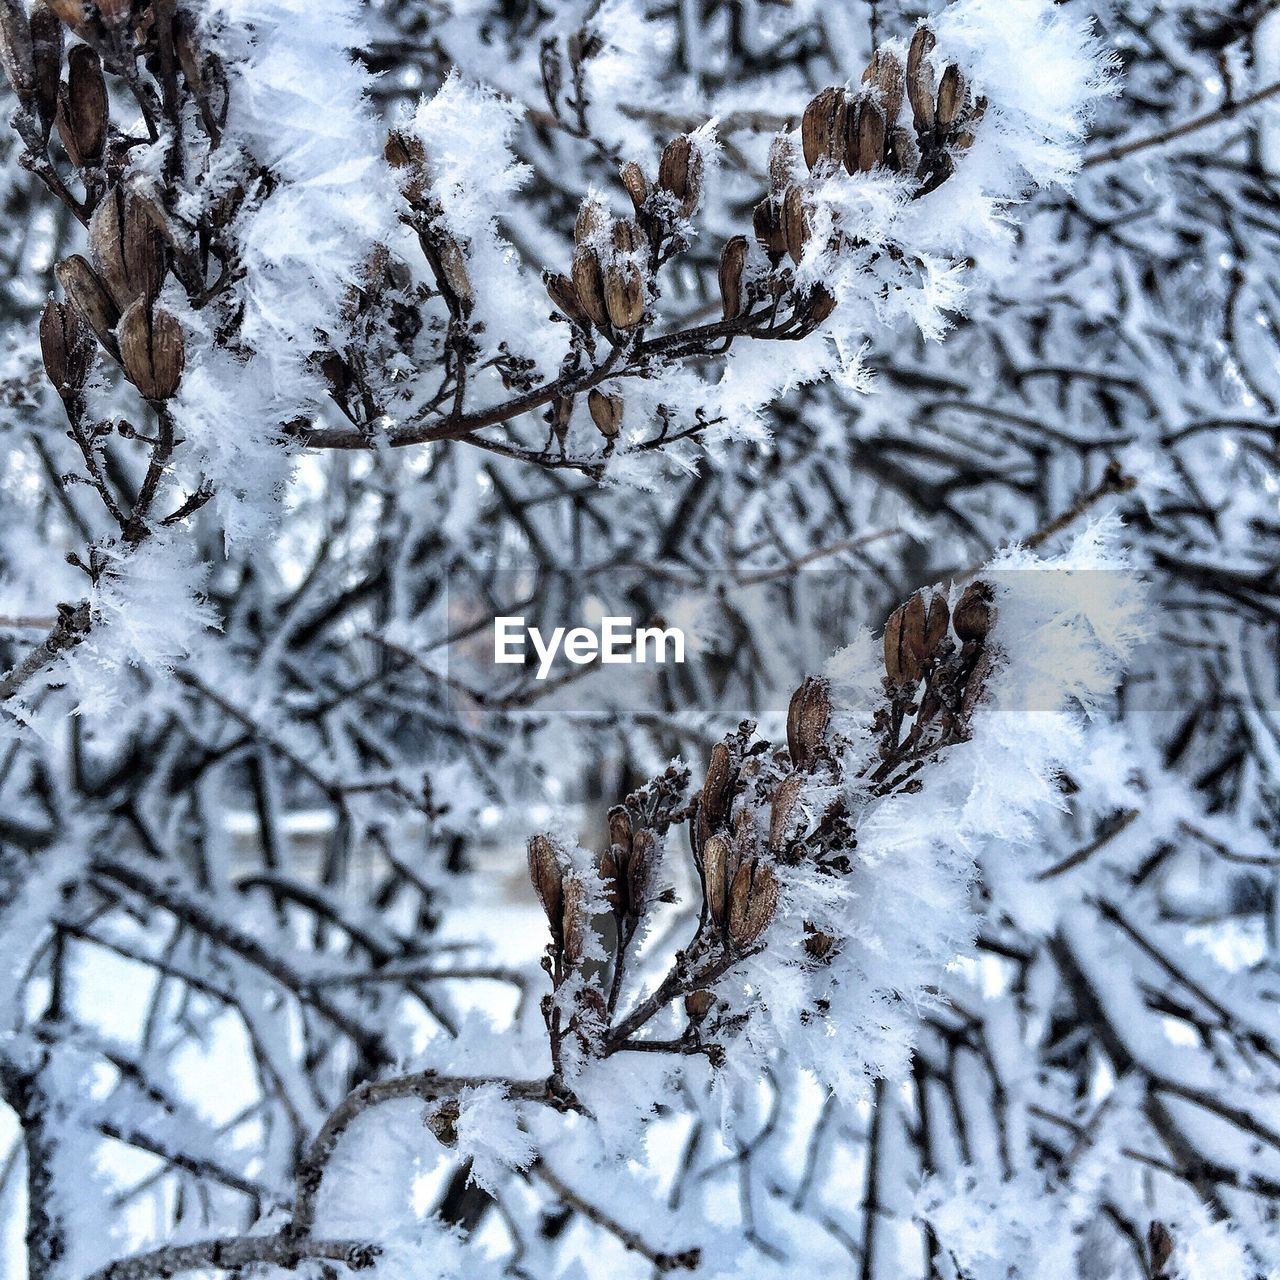 winter, snow, cold temperature, nature, weather, no people, beauty in nature, tree, outdoors, day, branch, backgrounds, bare tree, snowing, close-up, snowflake, spruce tree